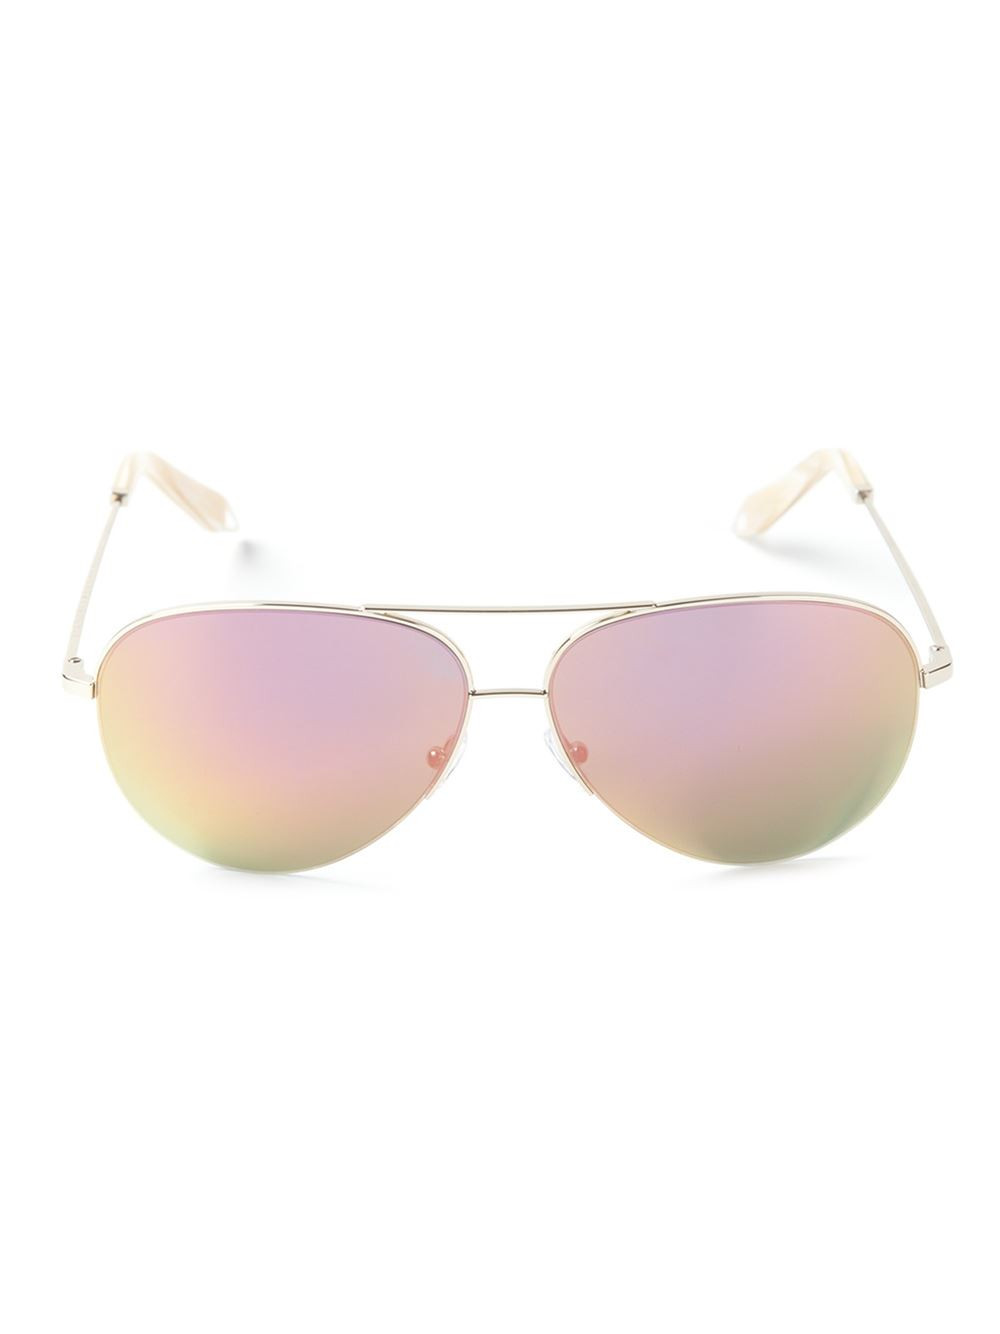 c2afecd0ad49 Victoria Beckham Aviator-Style Gold-Tone Mirrored Sunglasses In Pink ...